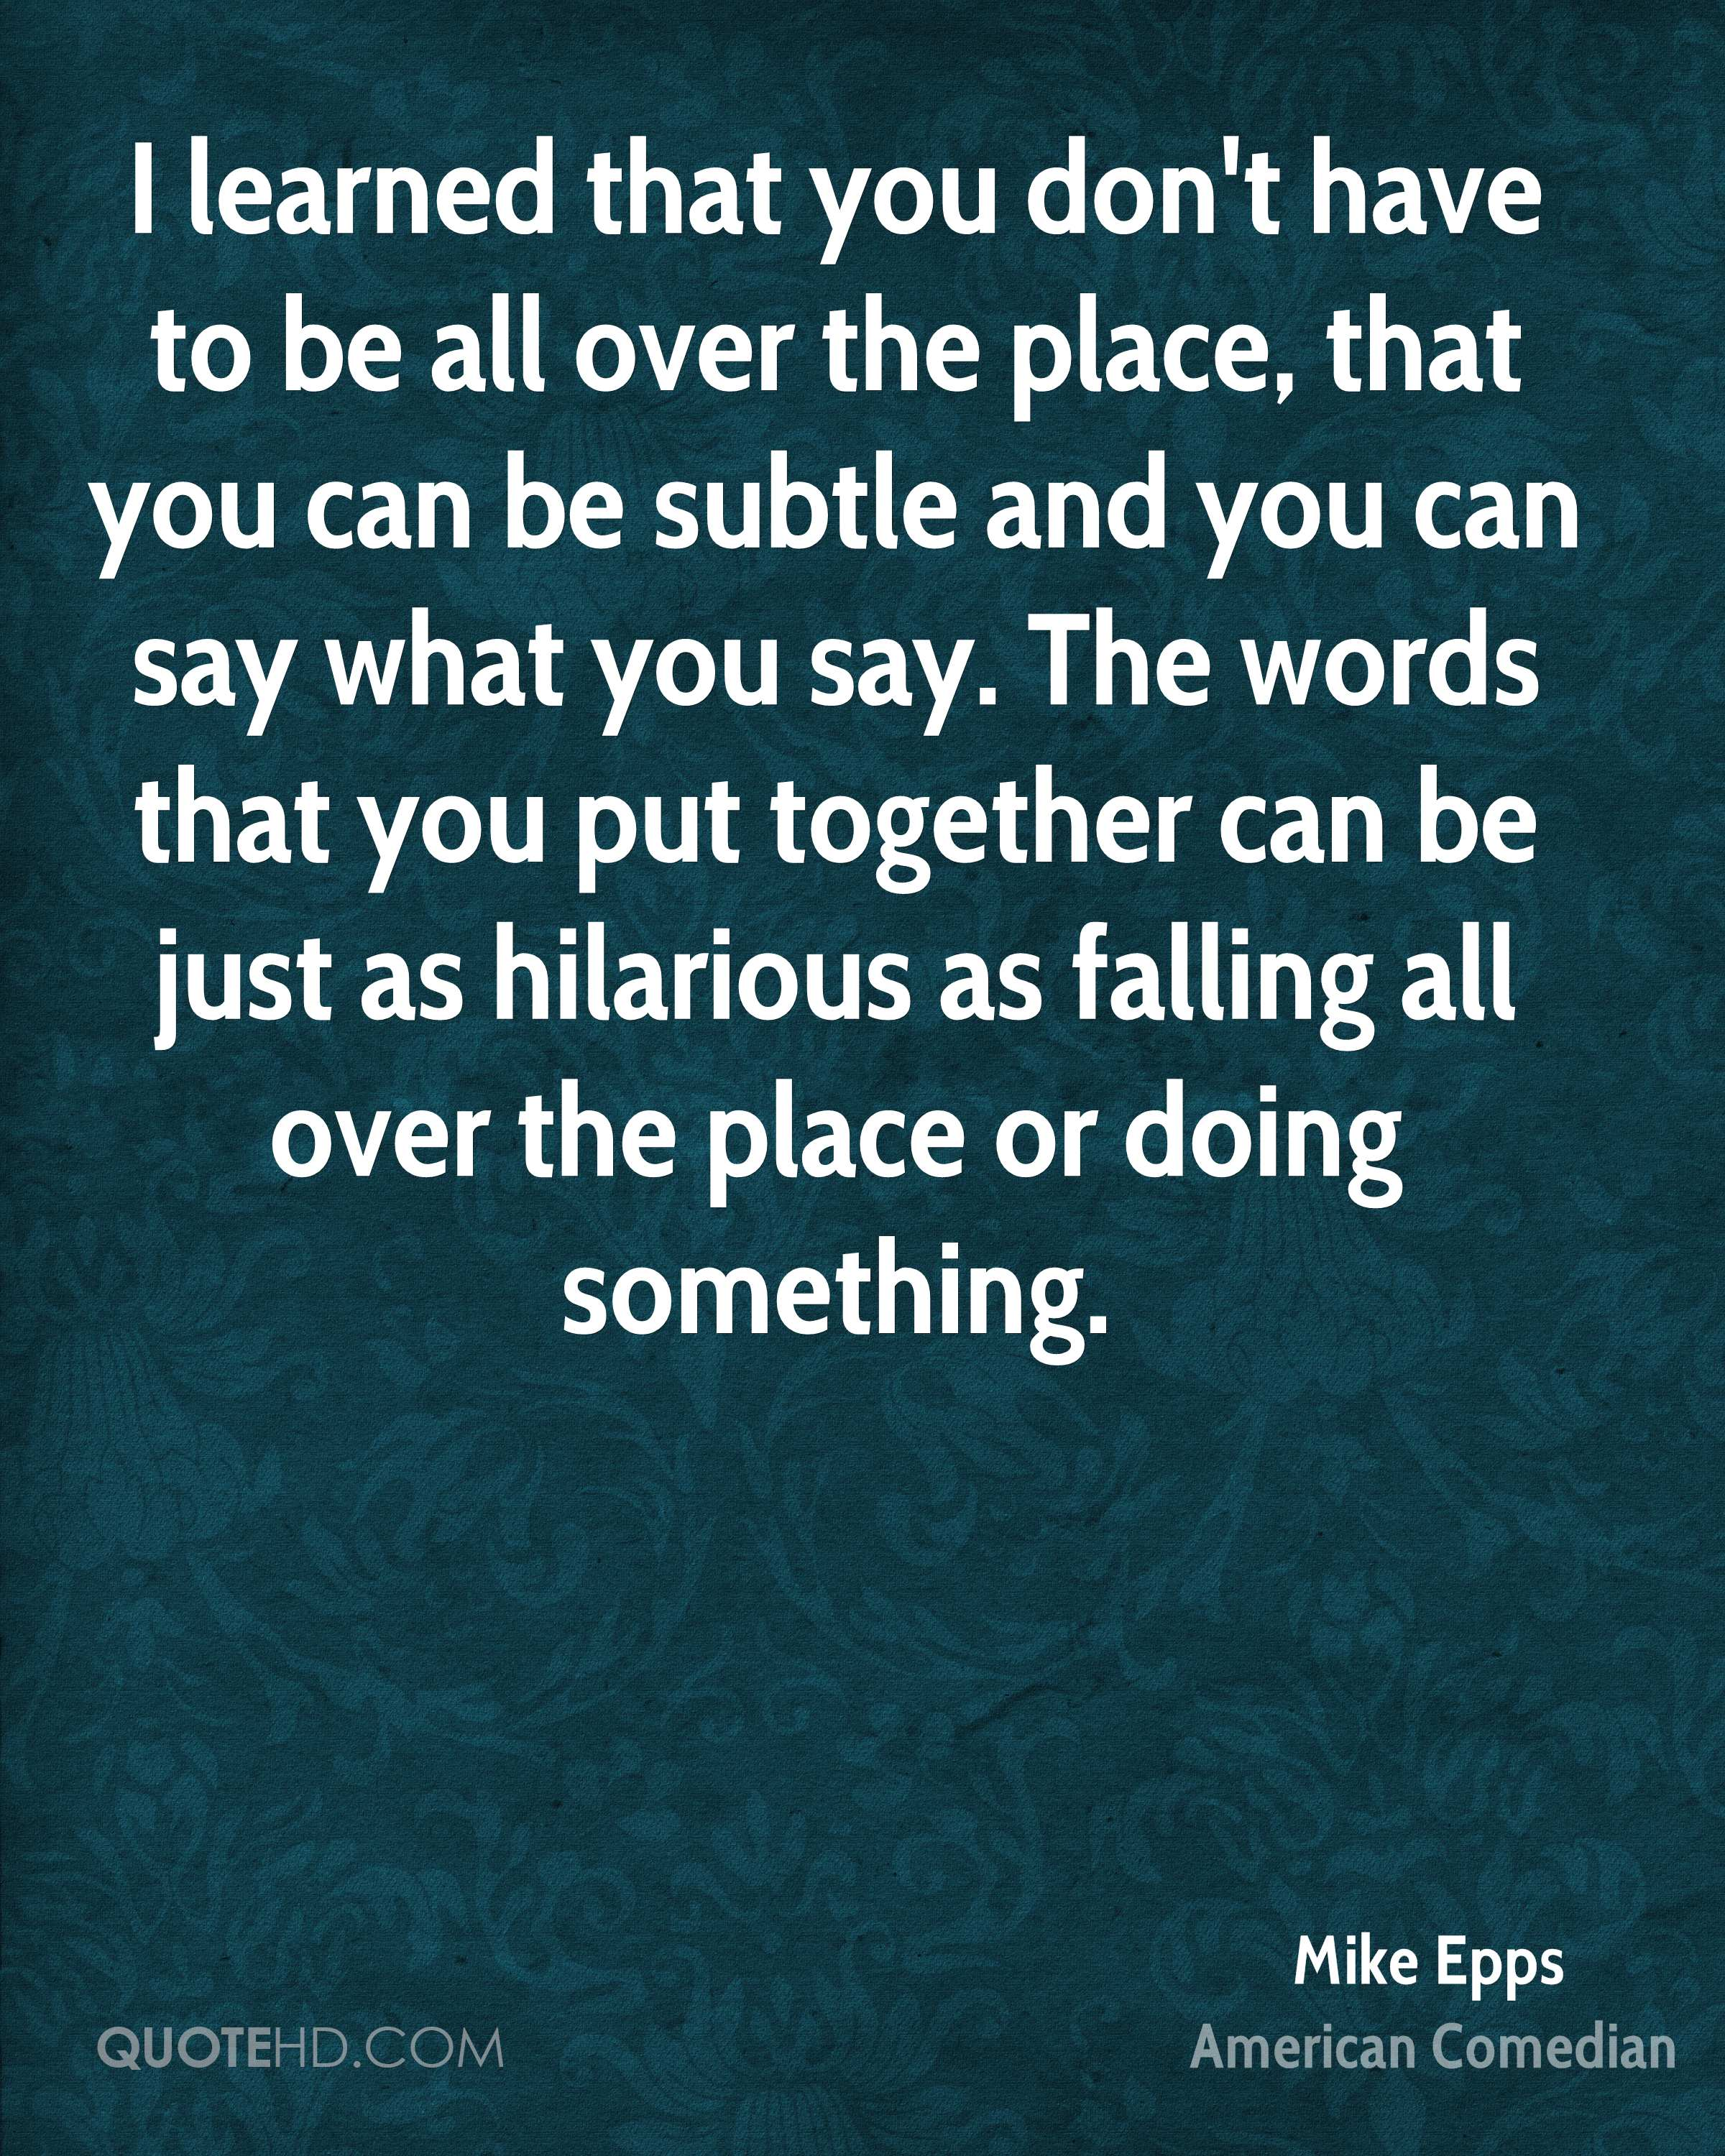 I learned that you don't have to be all over the place, that you can be subtle and you can say what you say. The words that you put together can be just as hilarious as falling all over the place or doing something.